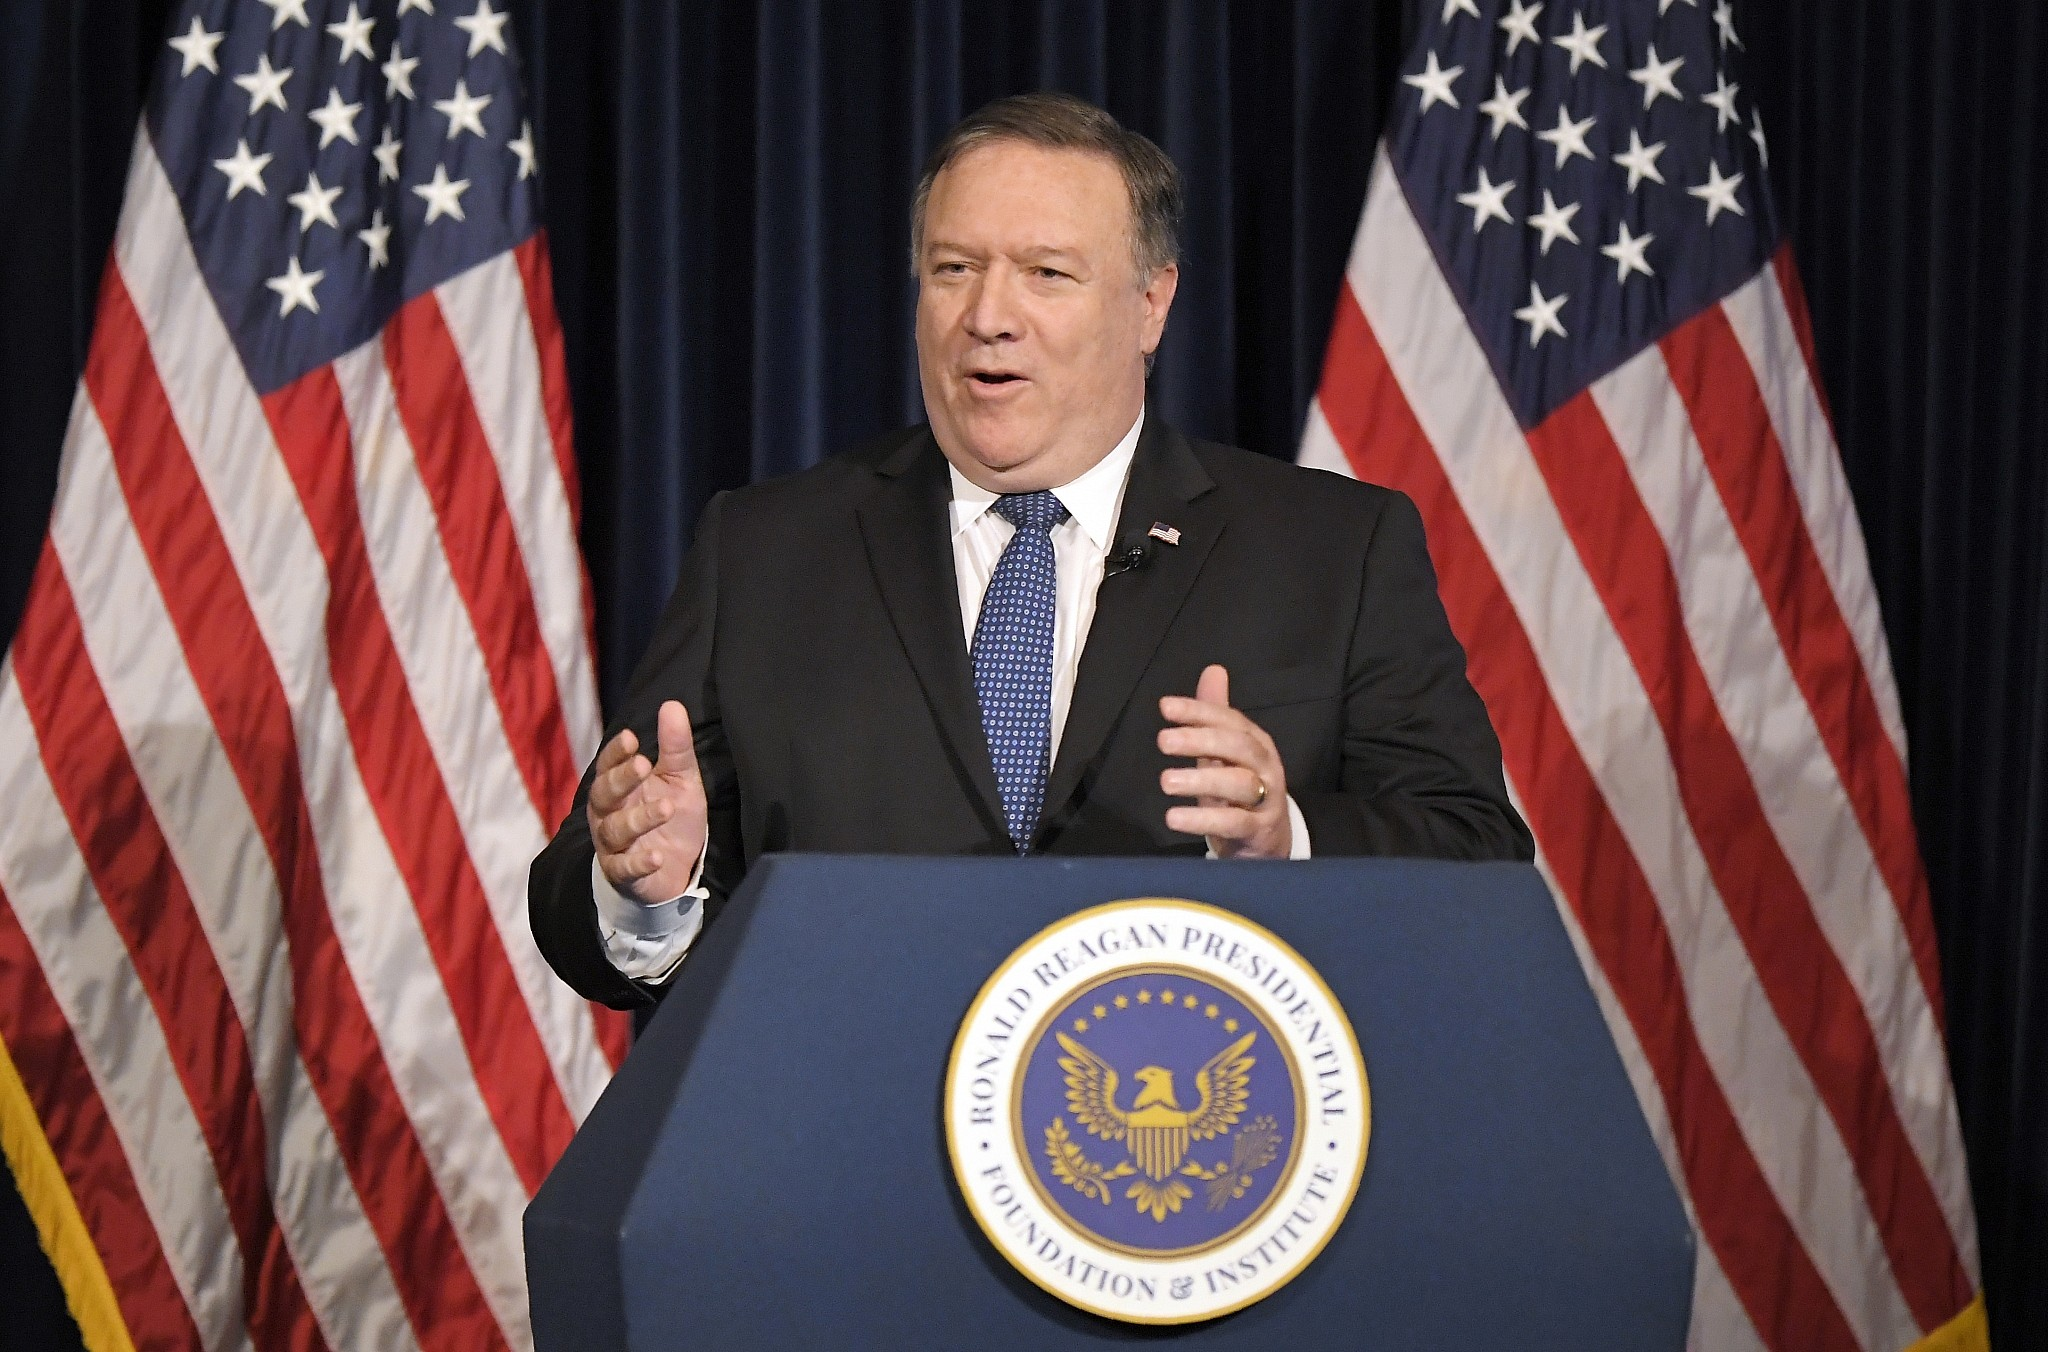 US Secretary of State Mike Pompeo speaks at the Ronald Reagan Presidential Library Sunday